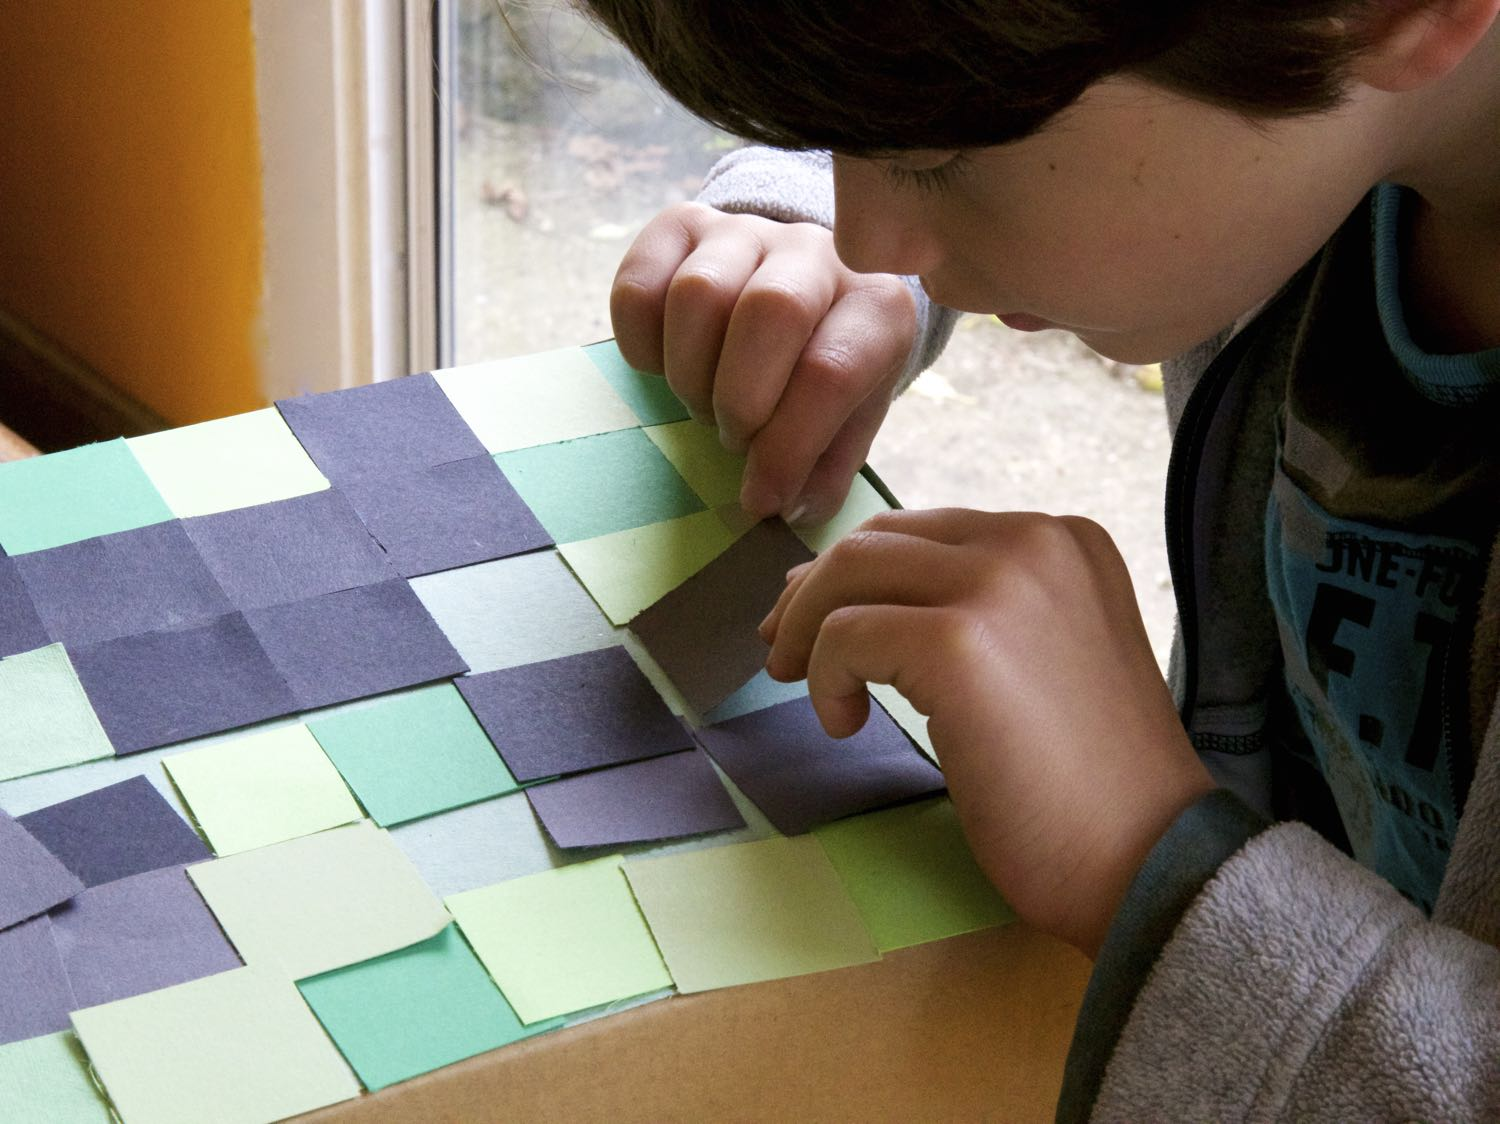 Arranging the paper squares into a creeper face.